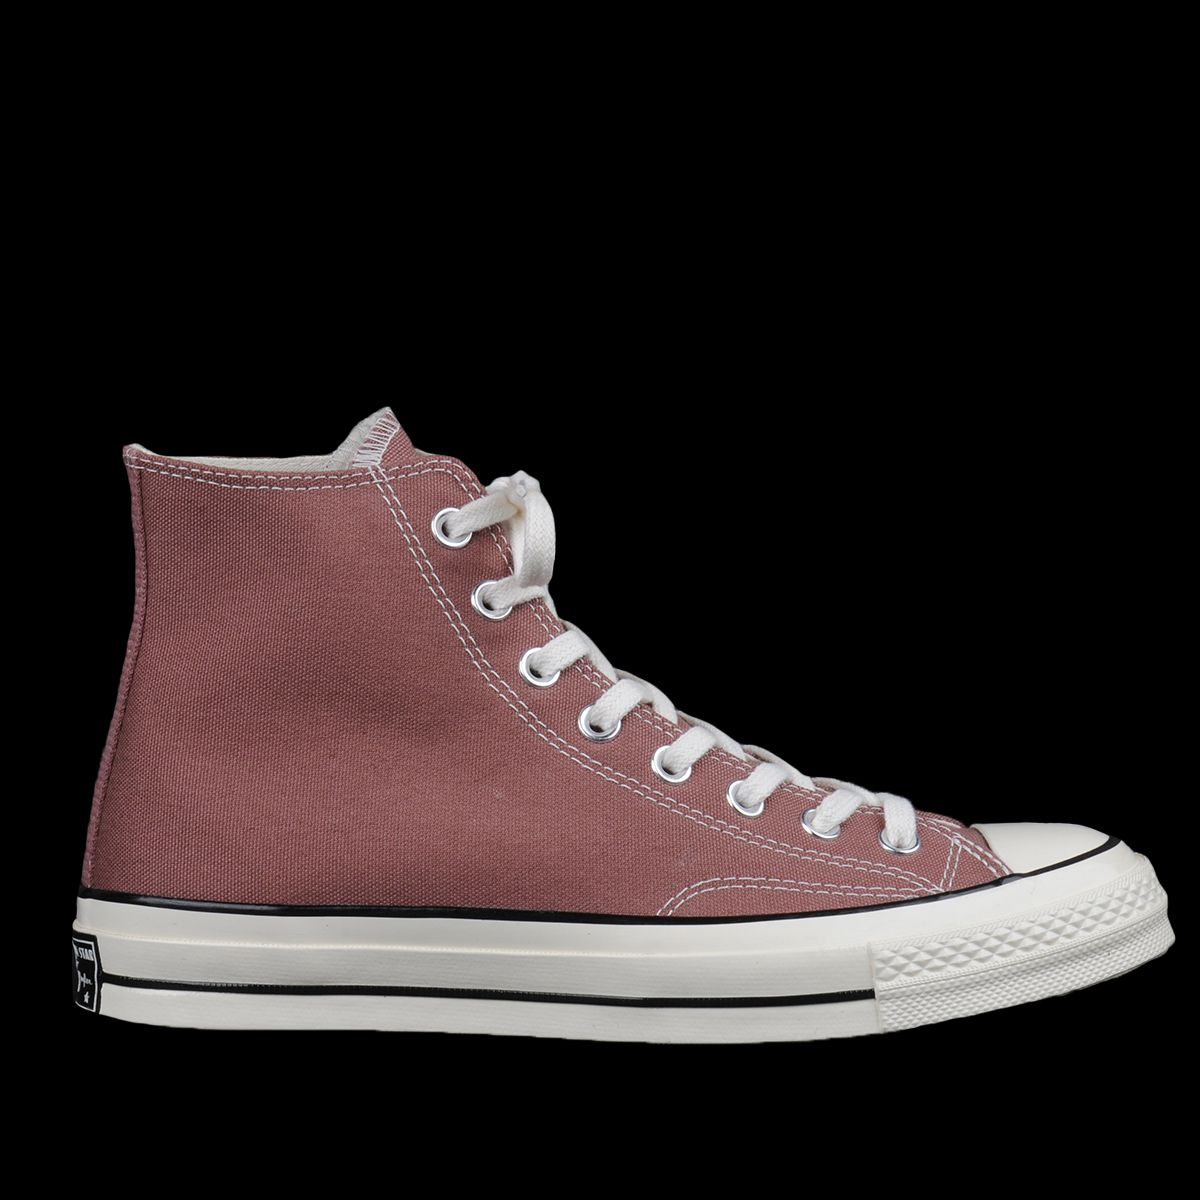 3d07bdd45400b6 UNIONMADE - Converse - Chuck Taylor All Star 70 Hi in Saddle